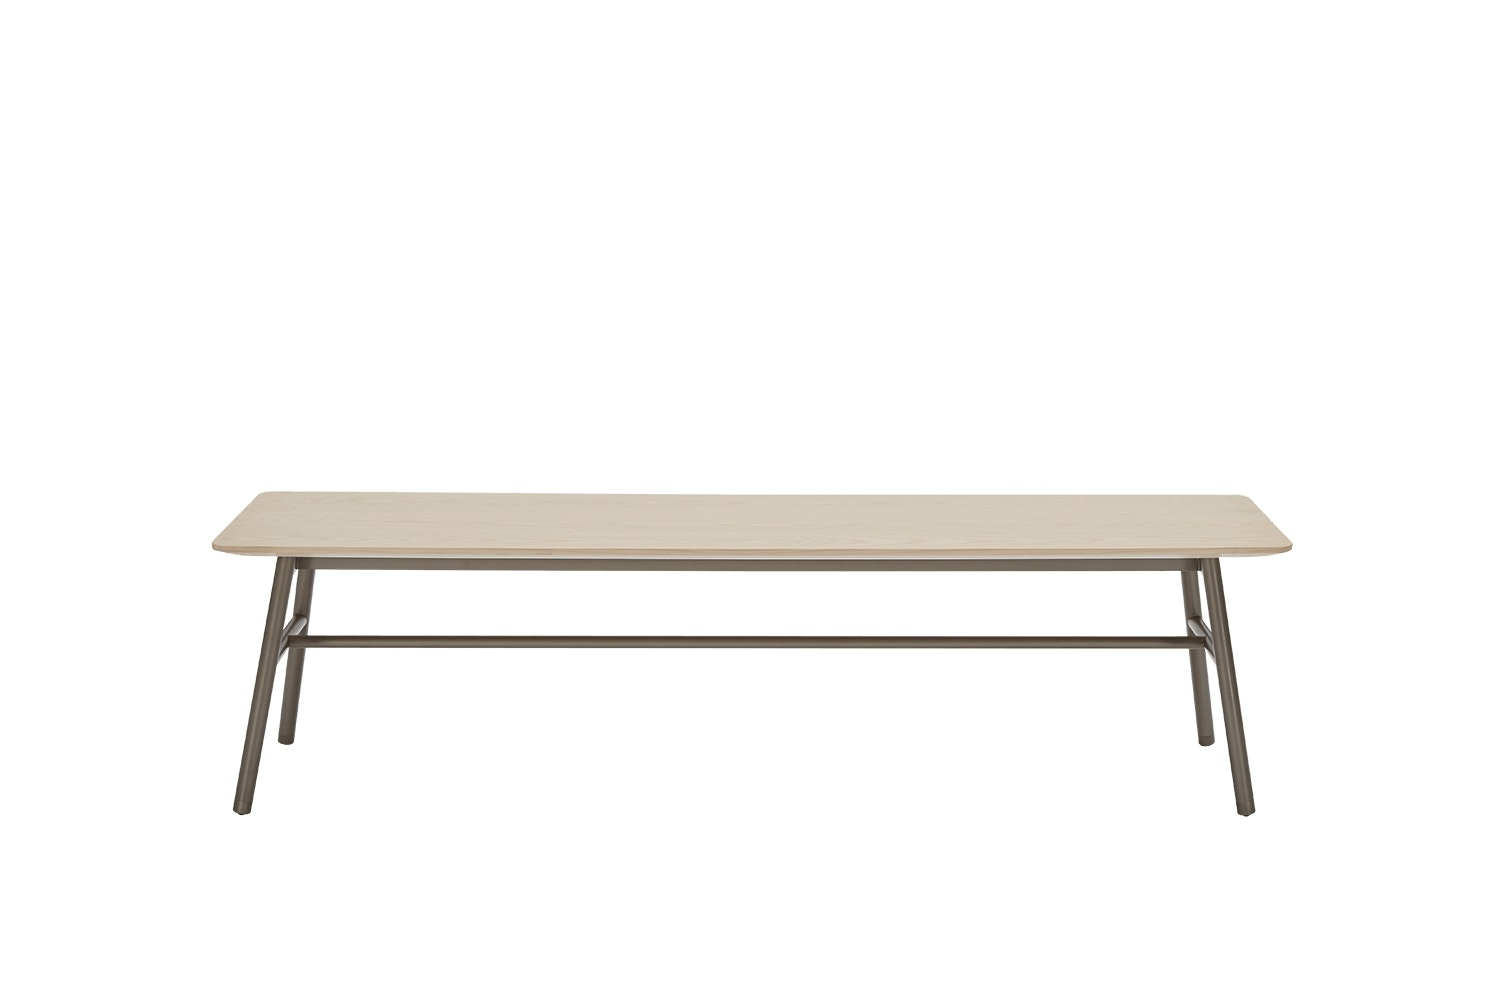 Holland Bench by Metrica for SP01